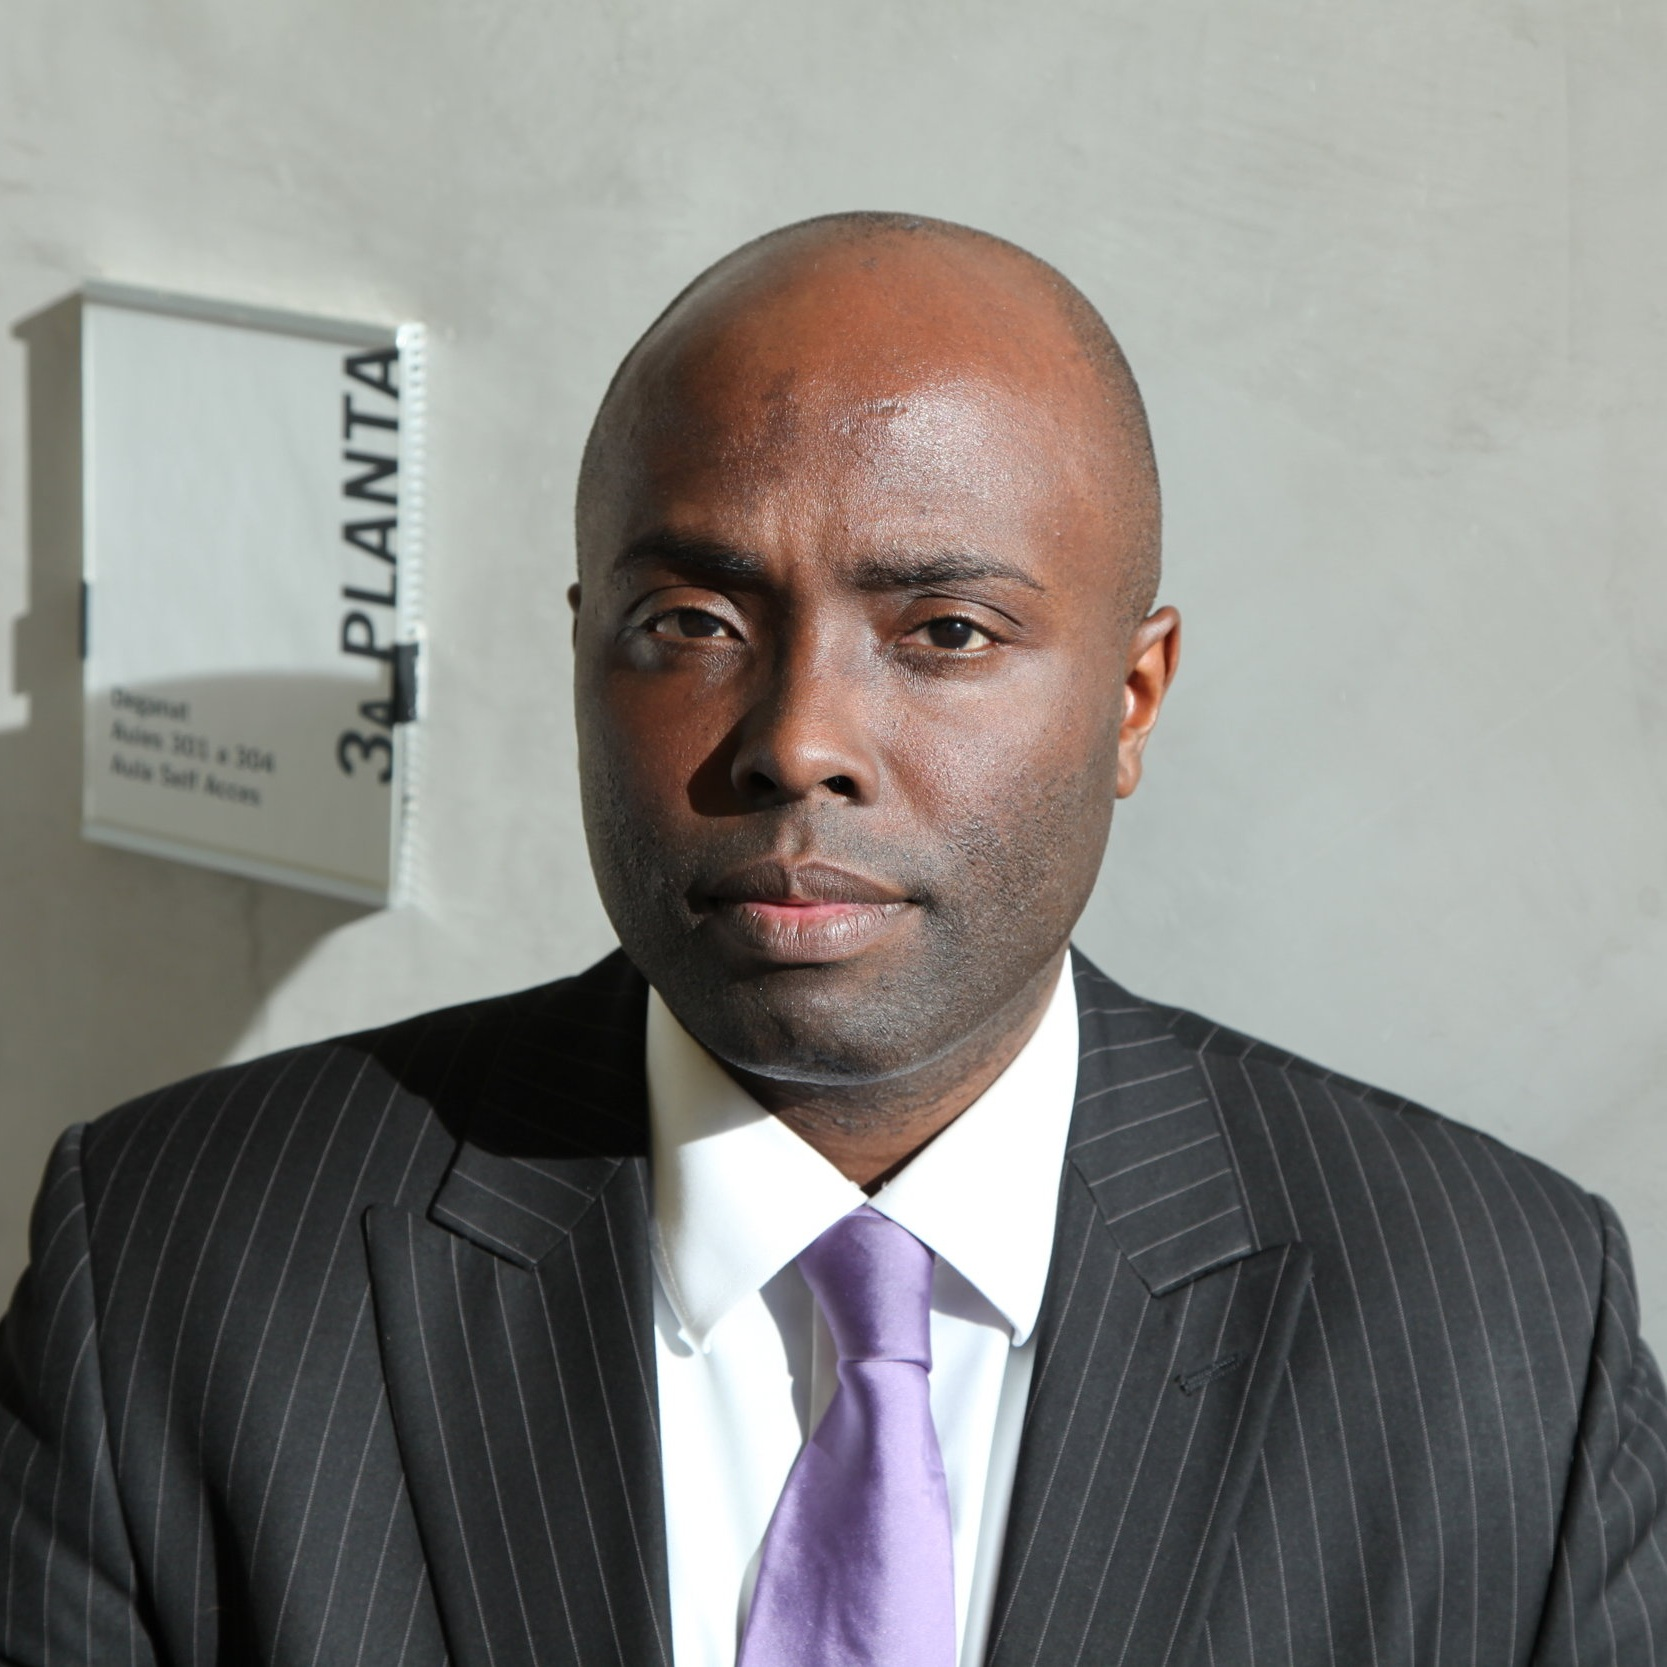 Dr. Lawrence Ampofo - Digital MindfulnessDr. Lawrence Ampofo is the director and founder of Digital Mindfulness, an intelligence firm that focuses on supporting organisations with their understanding and application of ethical technologies and responsible innovation. Lawrence is the creator of The Digital Mindfulness Show, a podcast that has secured interviews with many of the luminaries in the digital wellbeing and ethical technology sectors, and is also the founder of the Digital Wellness Festival, Europe's first conference on this topic. Lawrence is an advisor for the DWC as he collaborates with companies that work towards advancing the global digital wellness community.